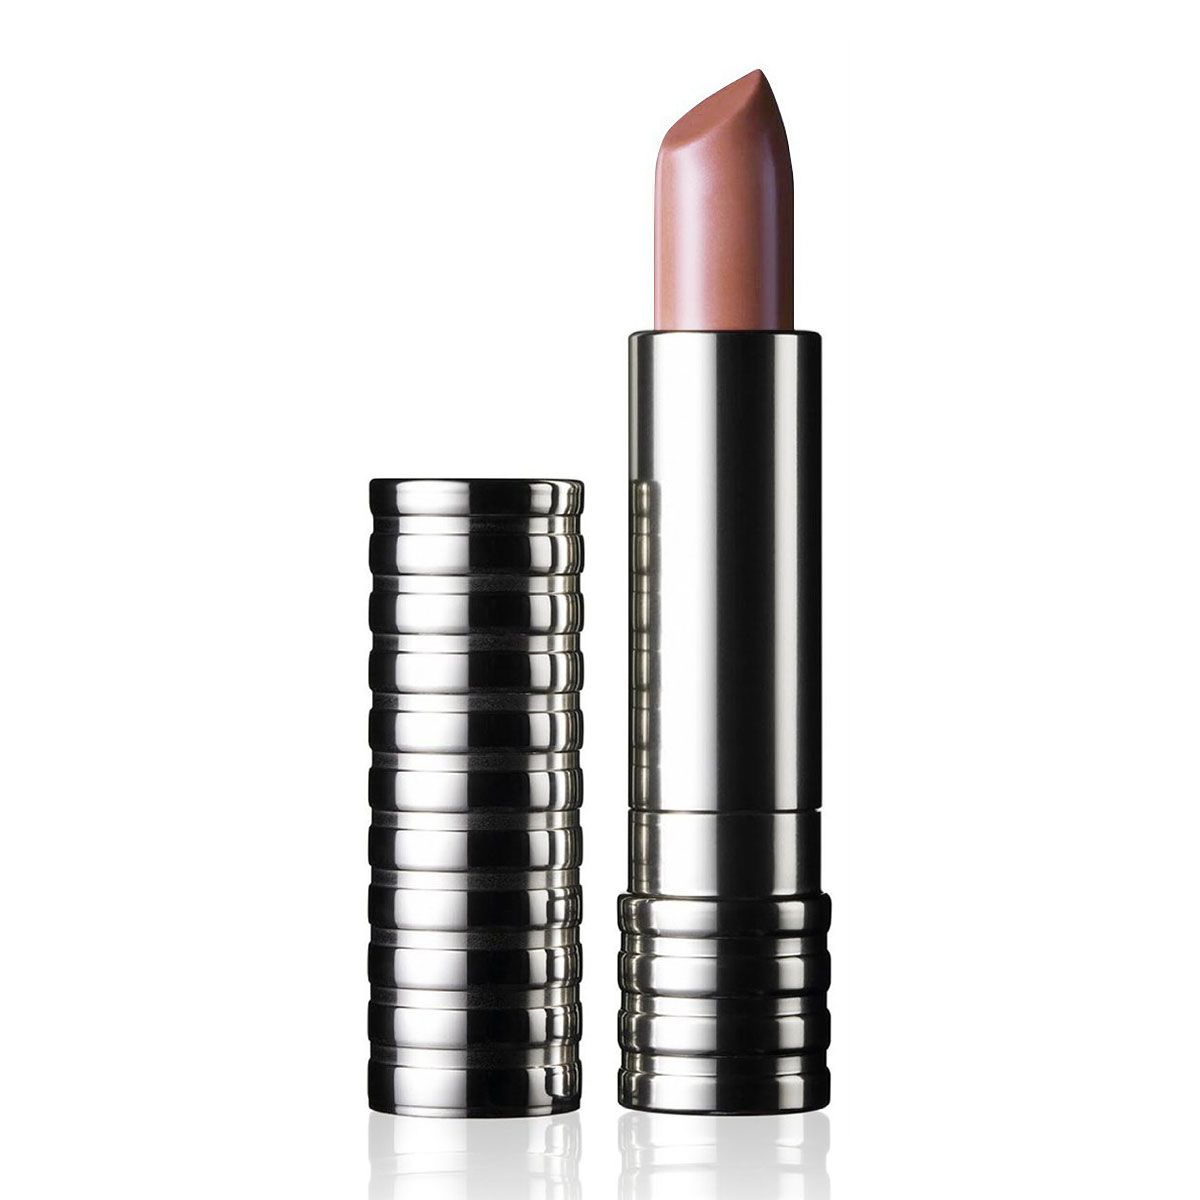 Clinique Long Last Lipstick in Creamy Nude